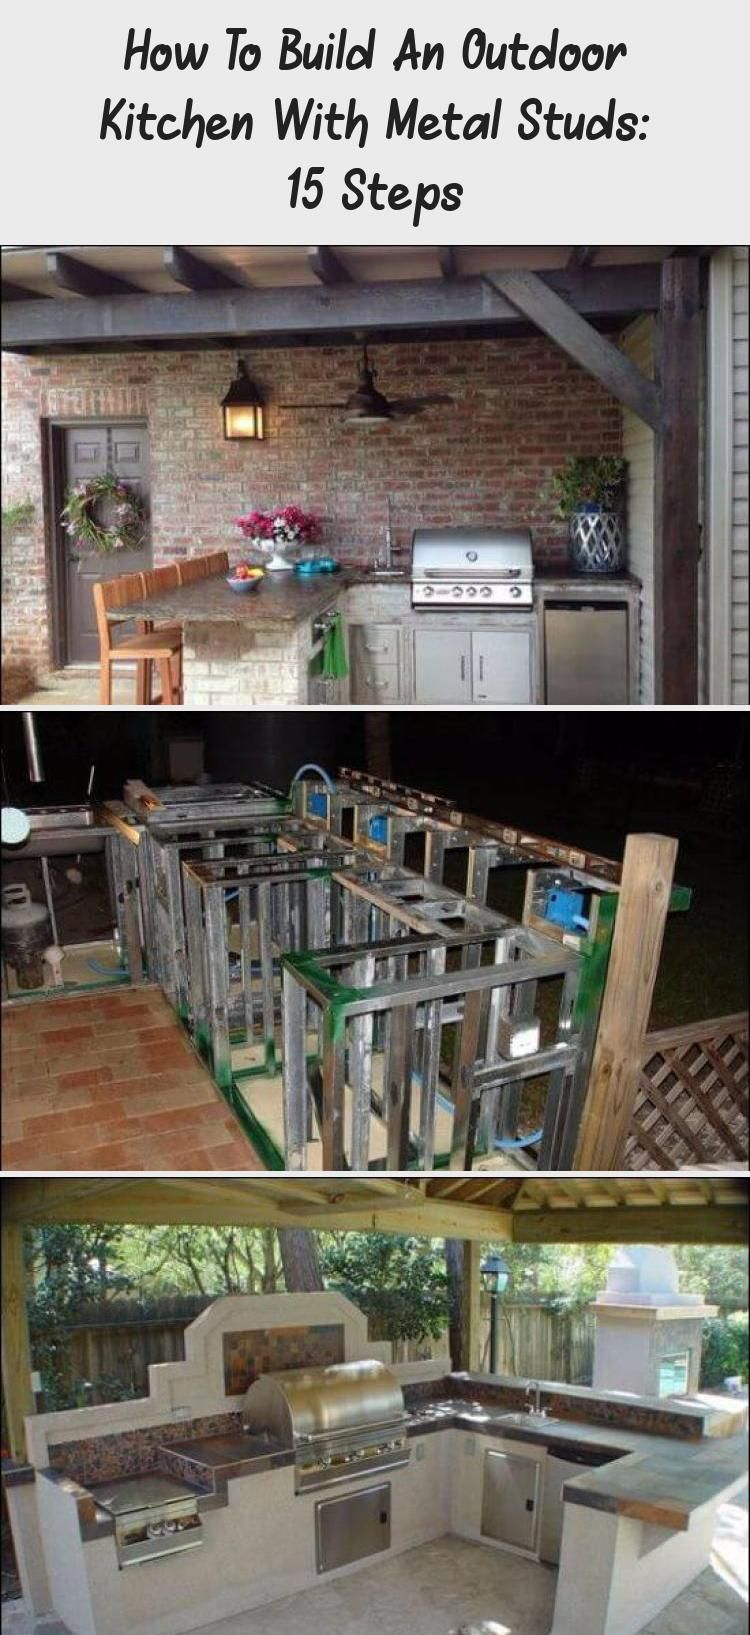 Do You Know How To Build An Outdoor Kitchen With Metal Studs If Not You Re In The Right Place Fo Build Outdoor Kitchen Outdoor Kitchen Plans Outdoor Kitchen